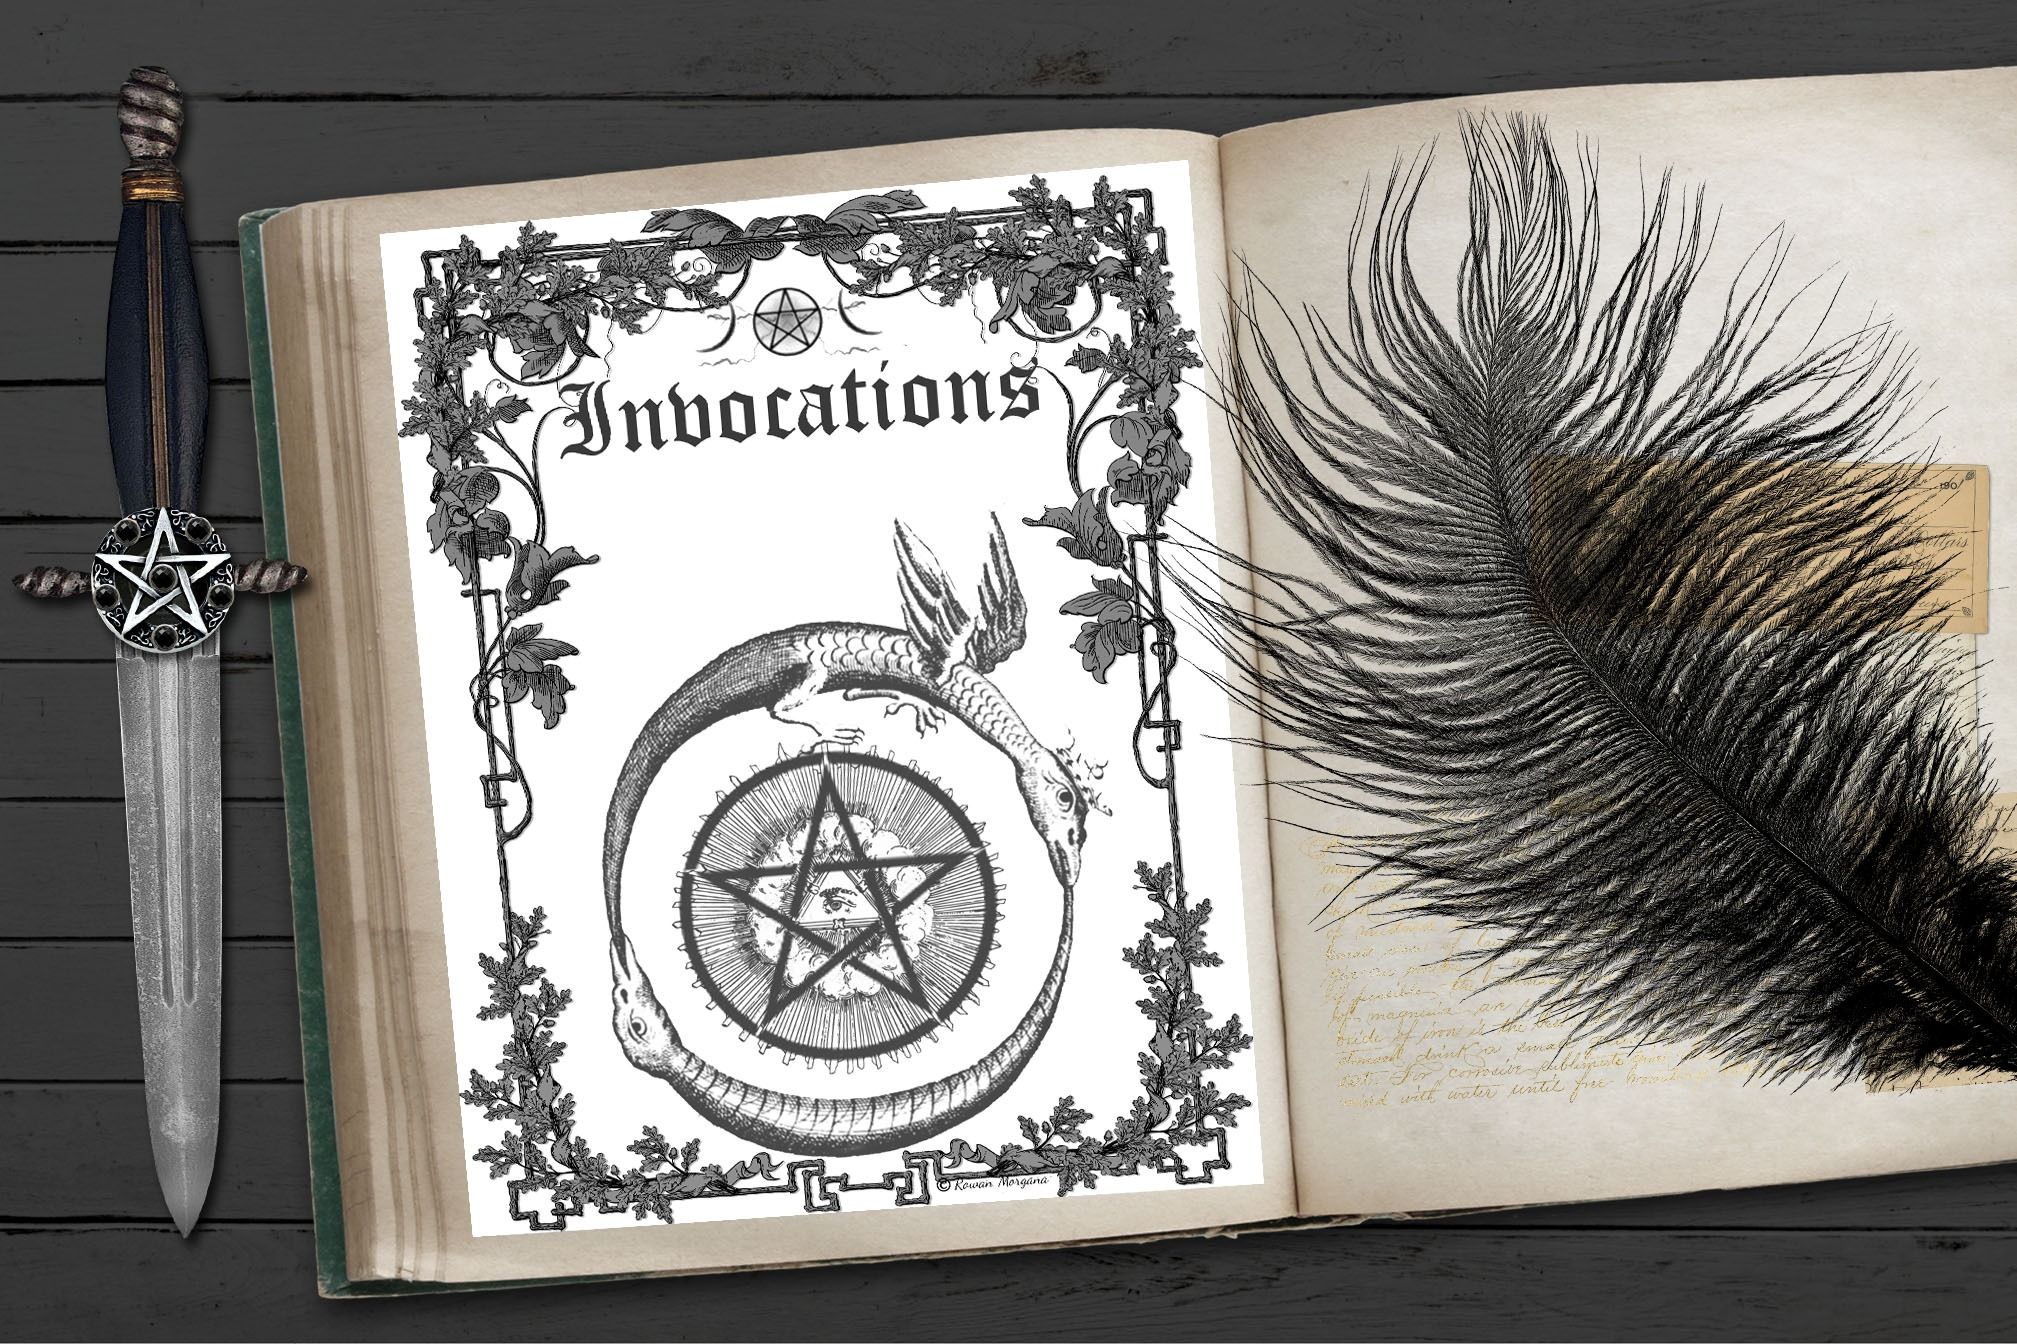 INVOCATIONS Book of Shadows Title Page